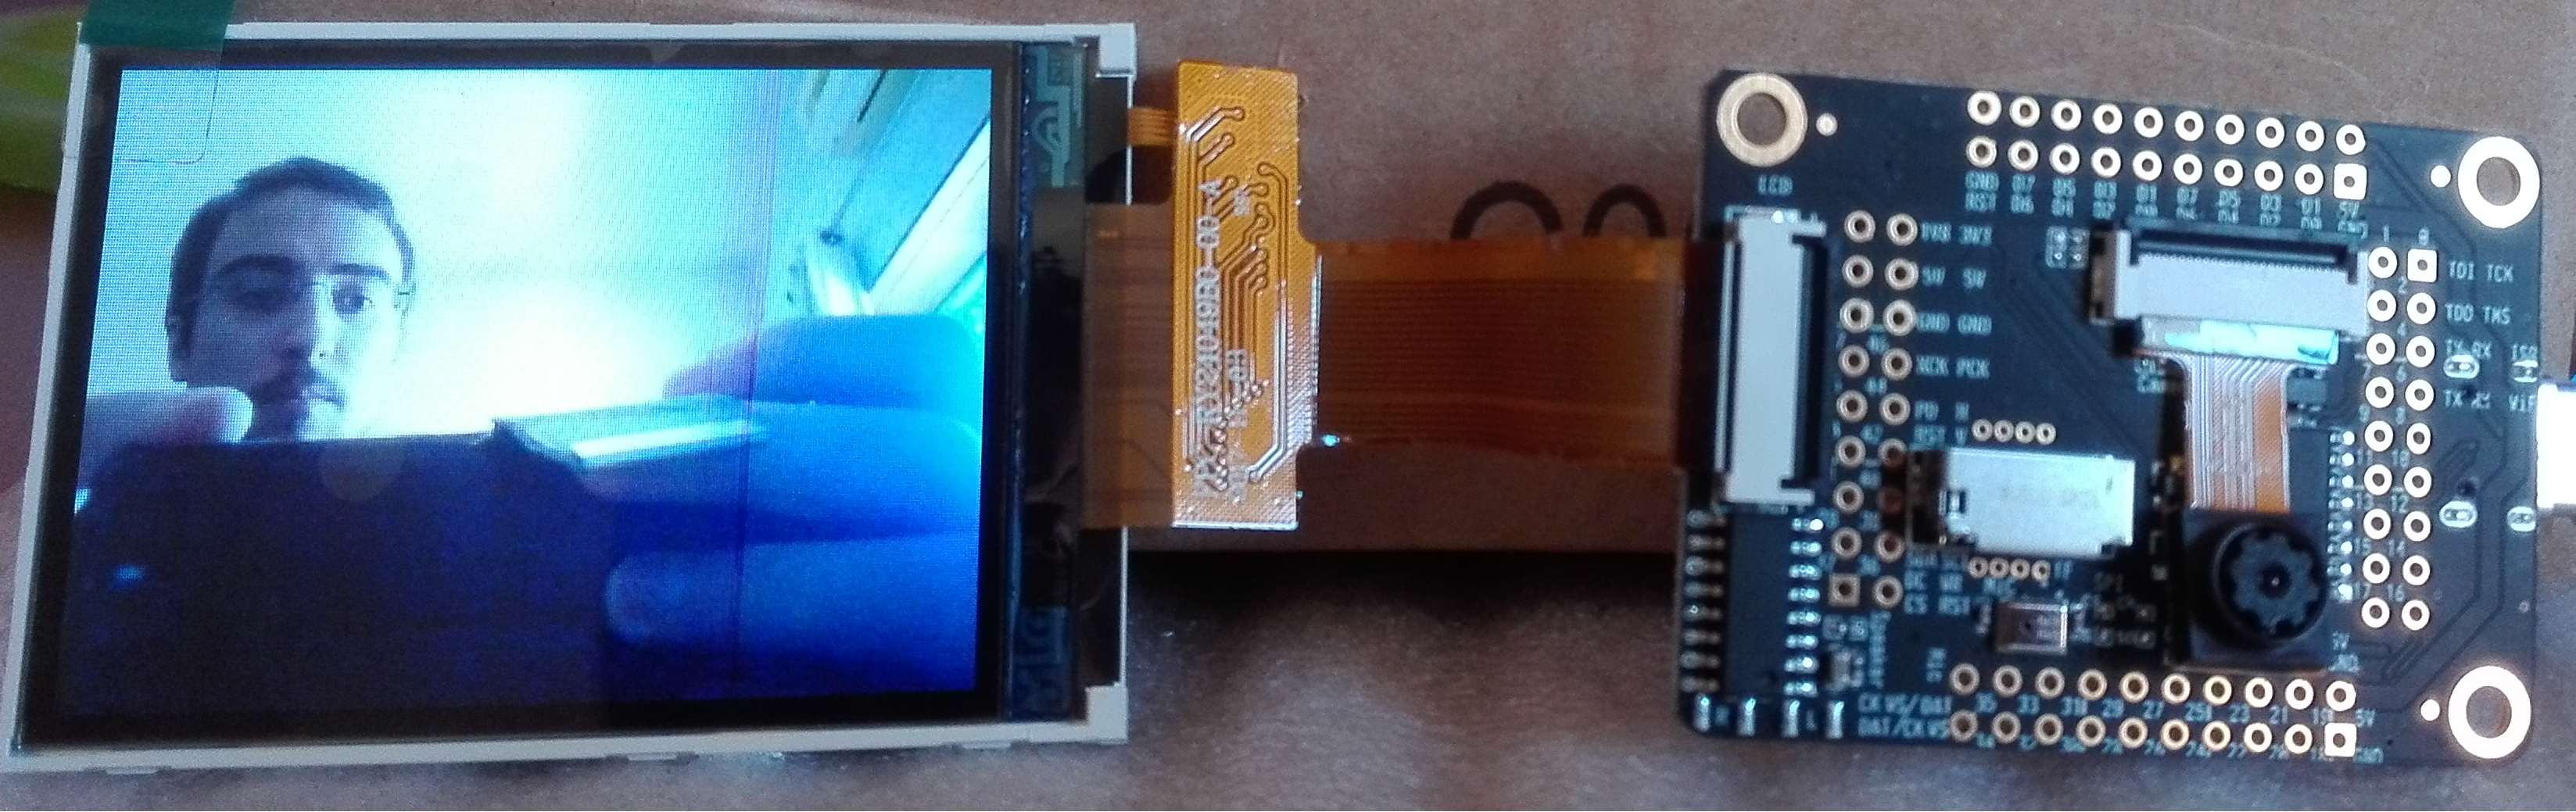 Sipeed M1 MicroPython: Displaying camera image in LCD – techtutorialsx